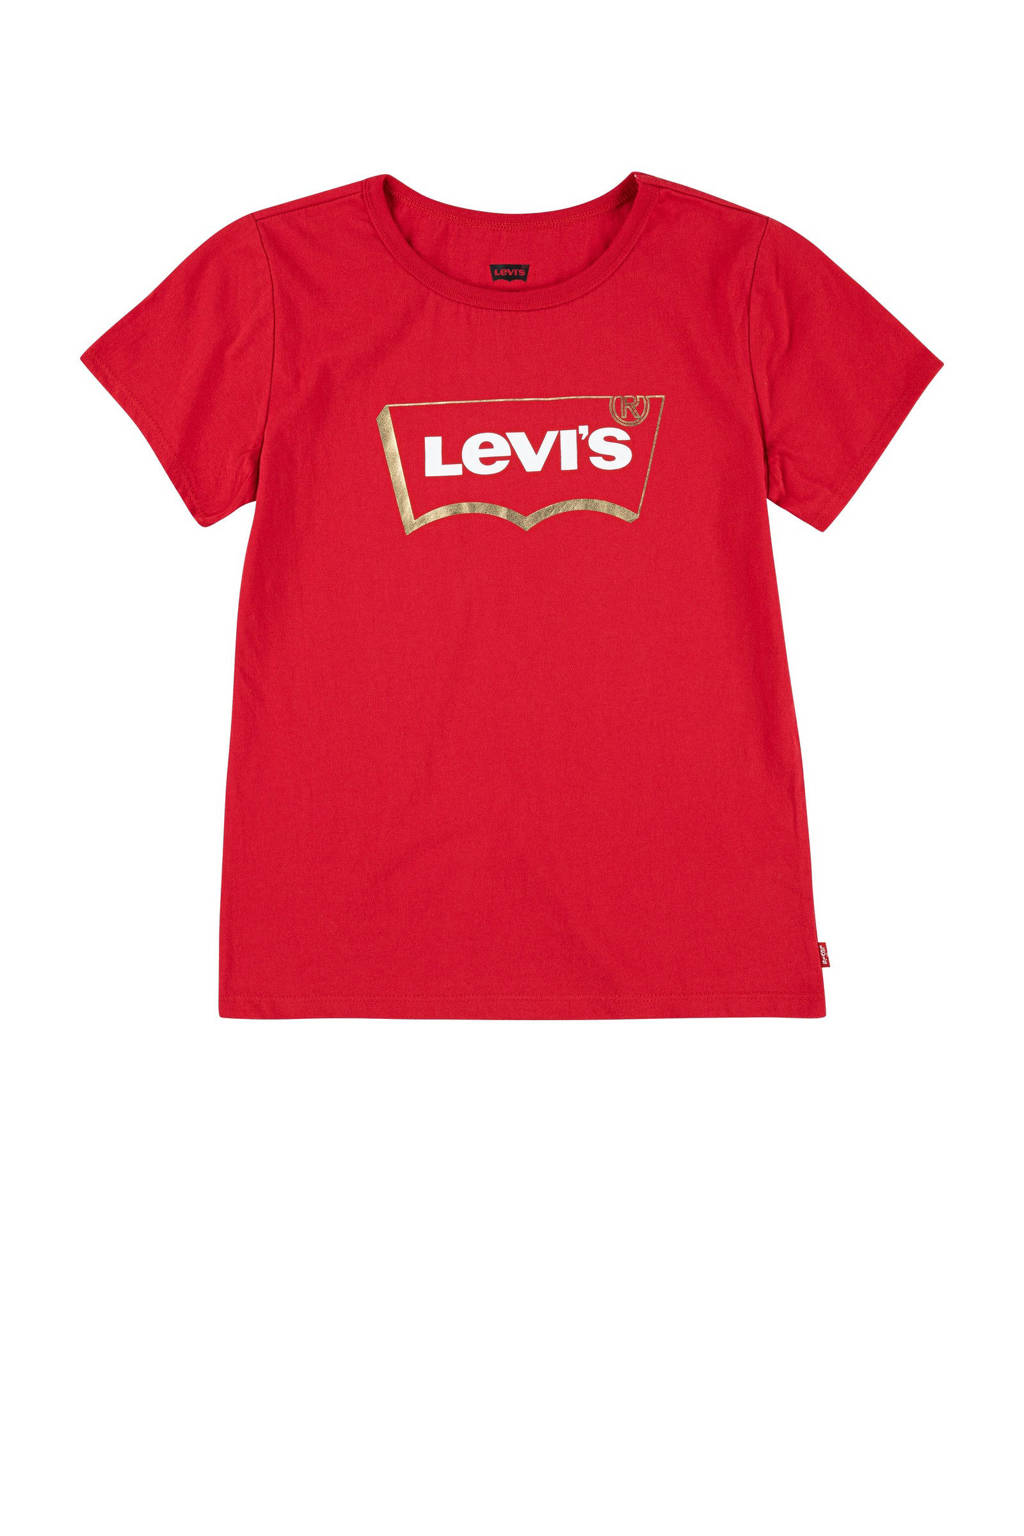 Levi's Kids T-shirt Graphic met logo rood, Rood